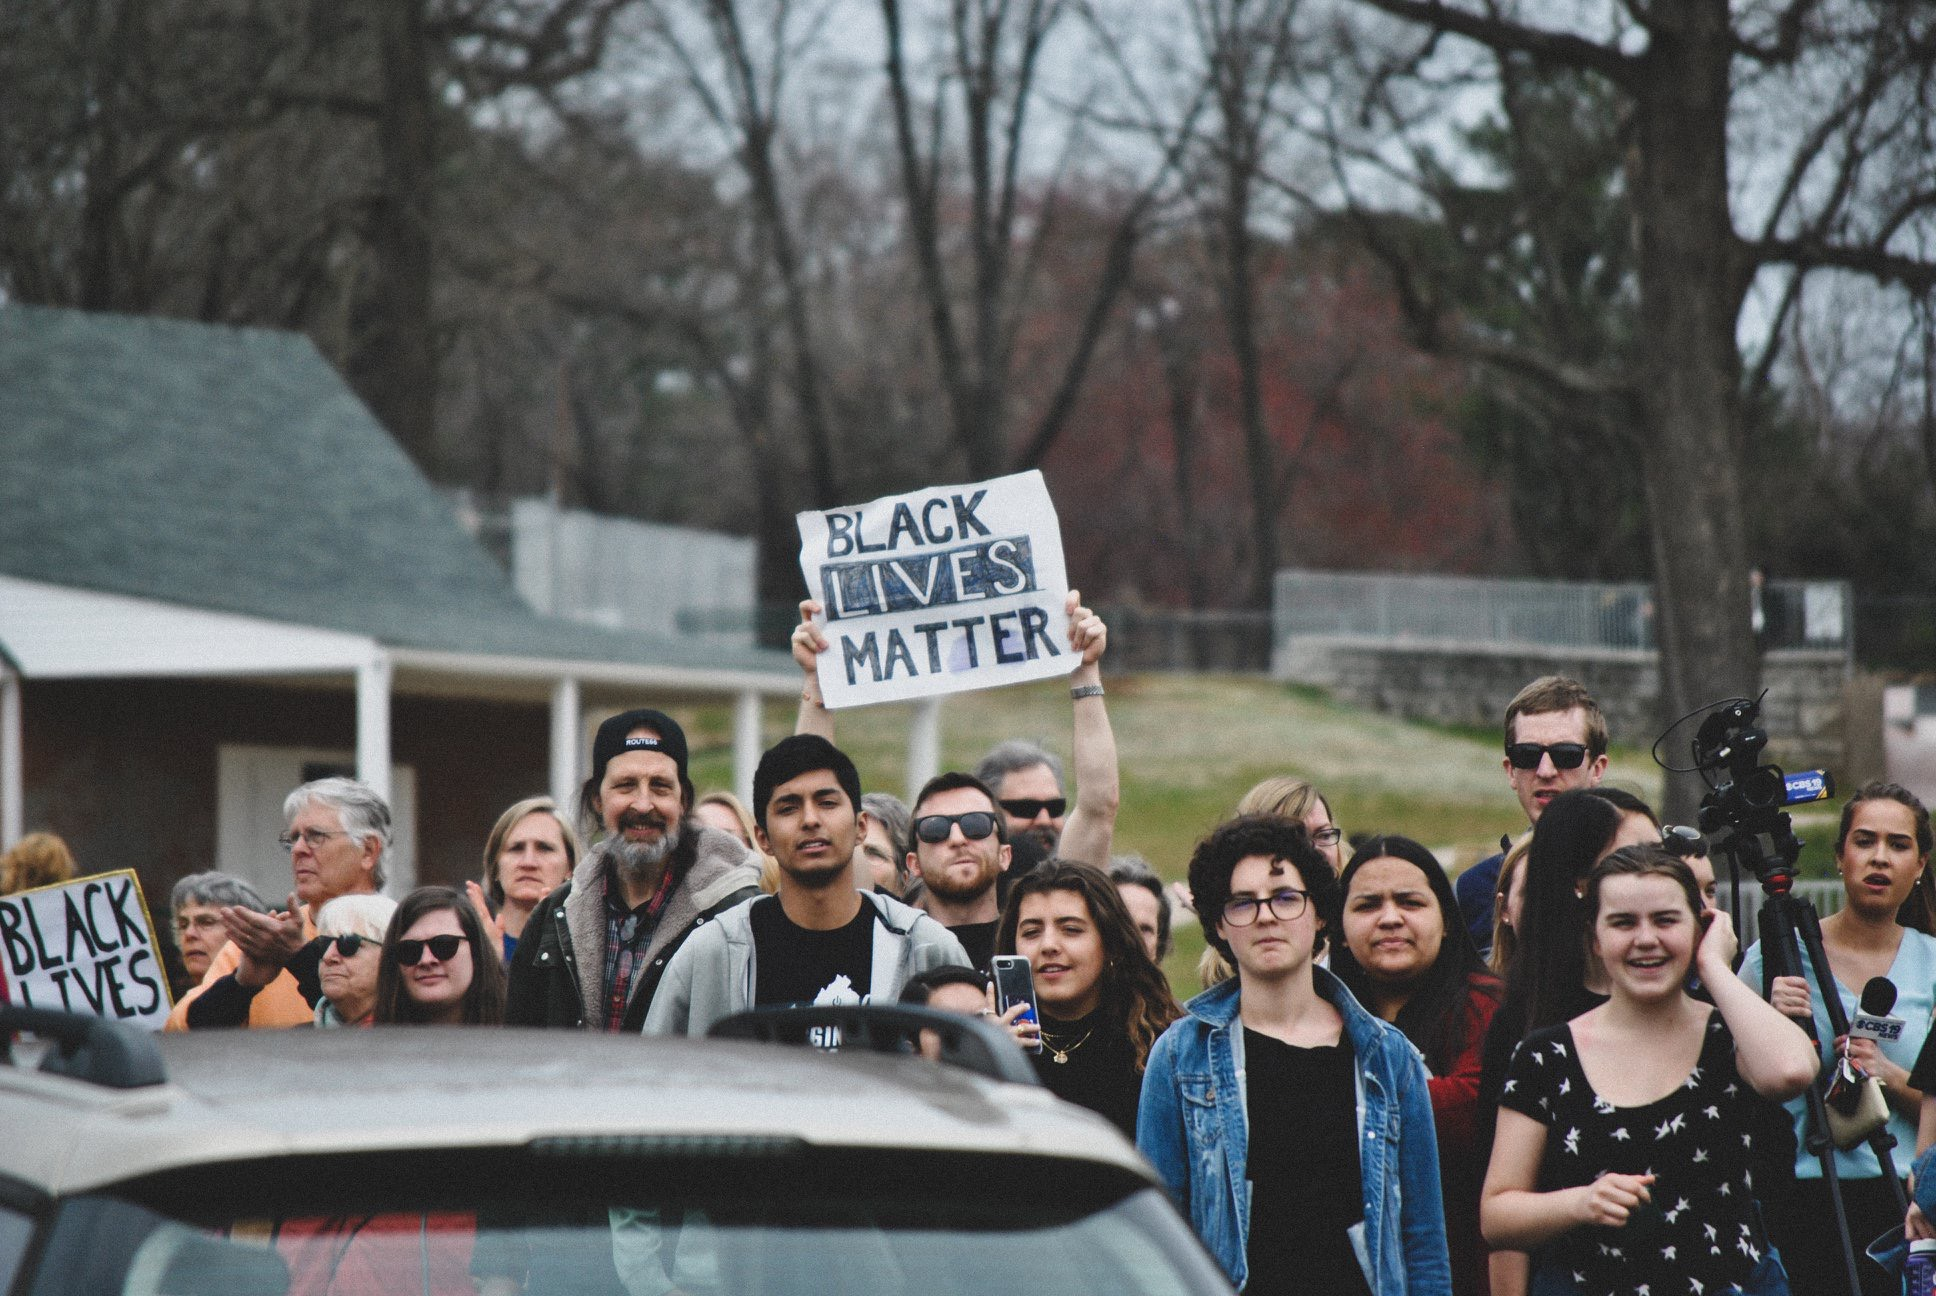 Walkout participants gather in McIntire park on the edge of 250 bypass, 2019. (Photo by Locs Image Photography)